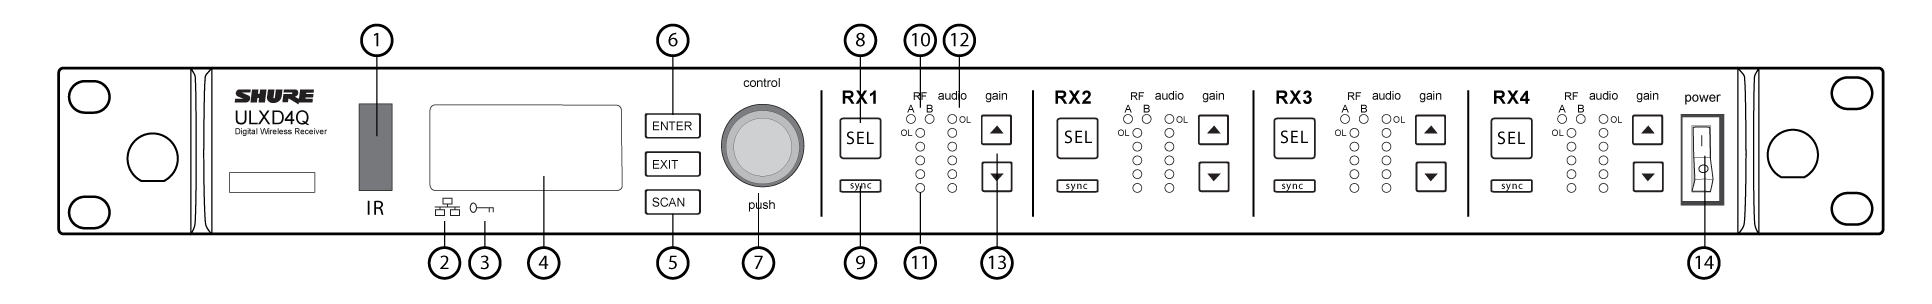 The front panel of the receiver with numbers calling out each part